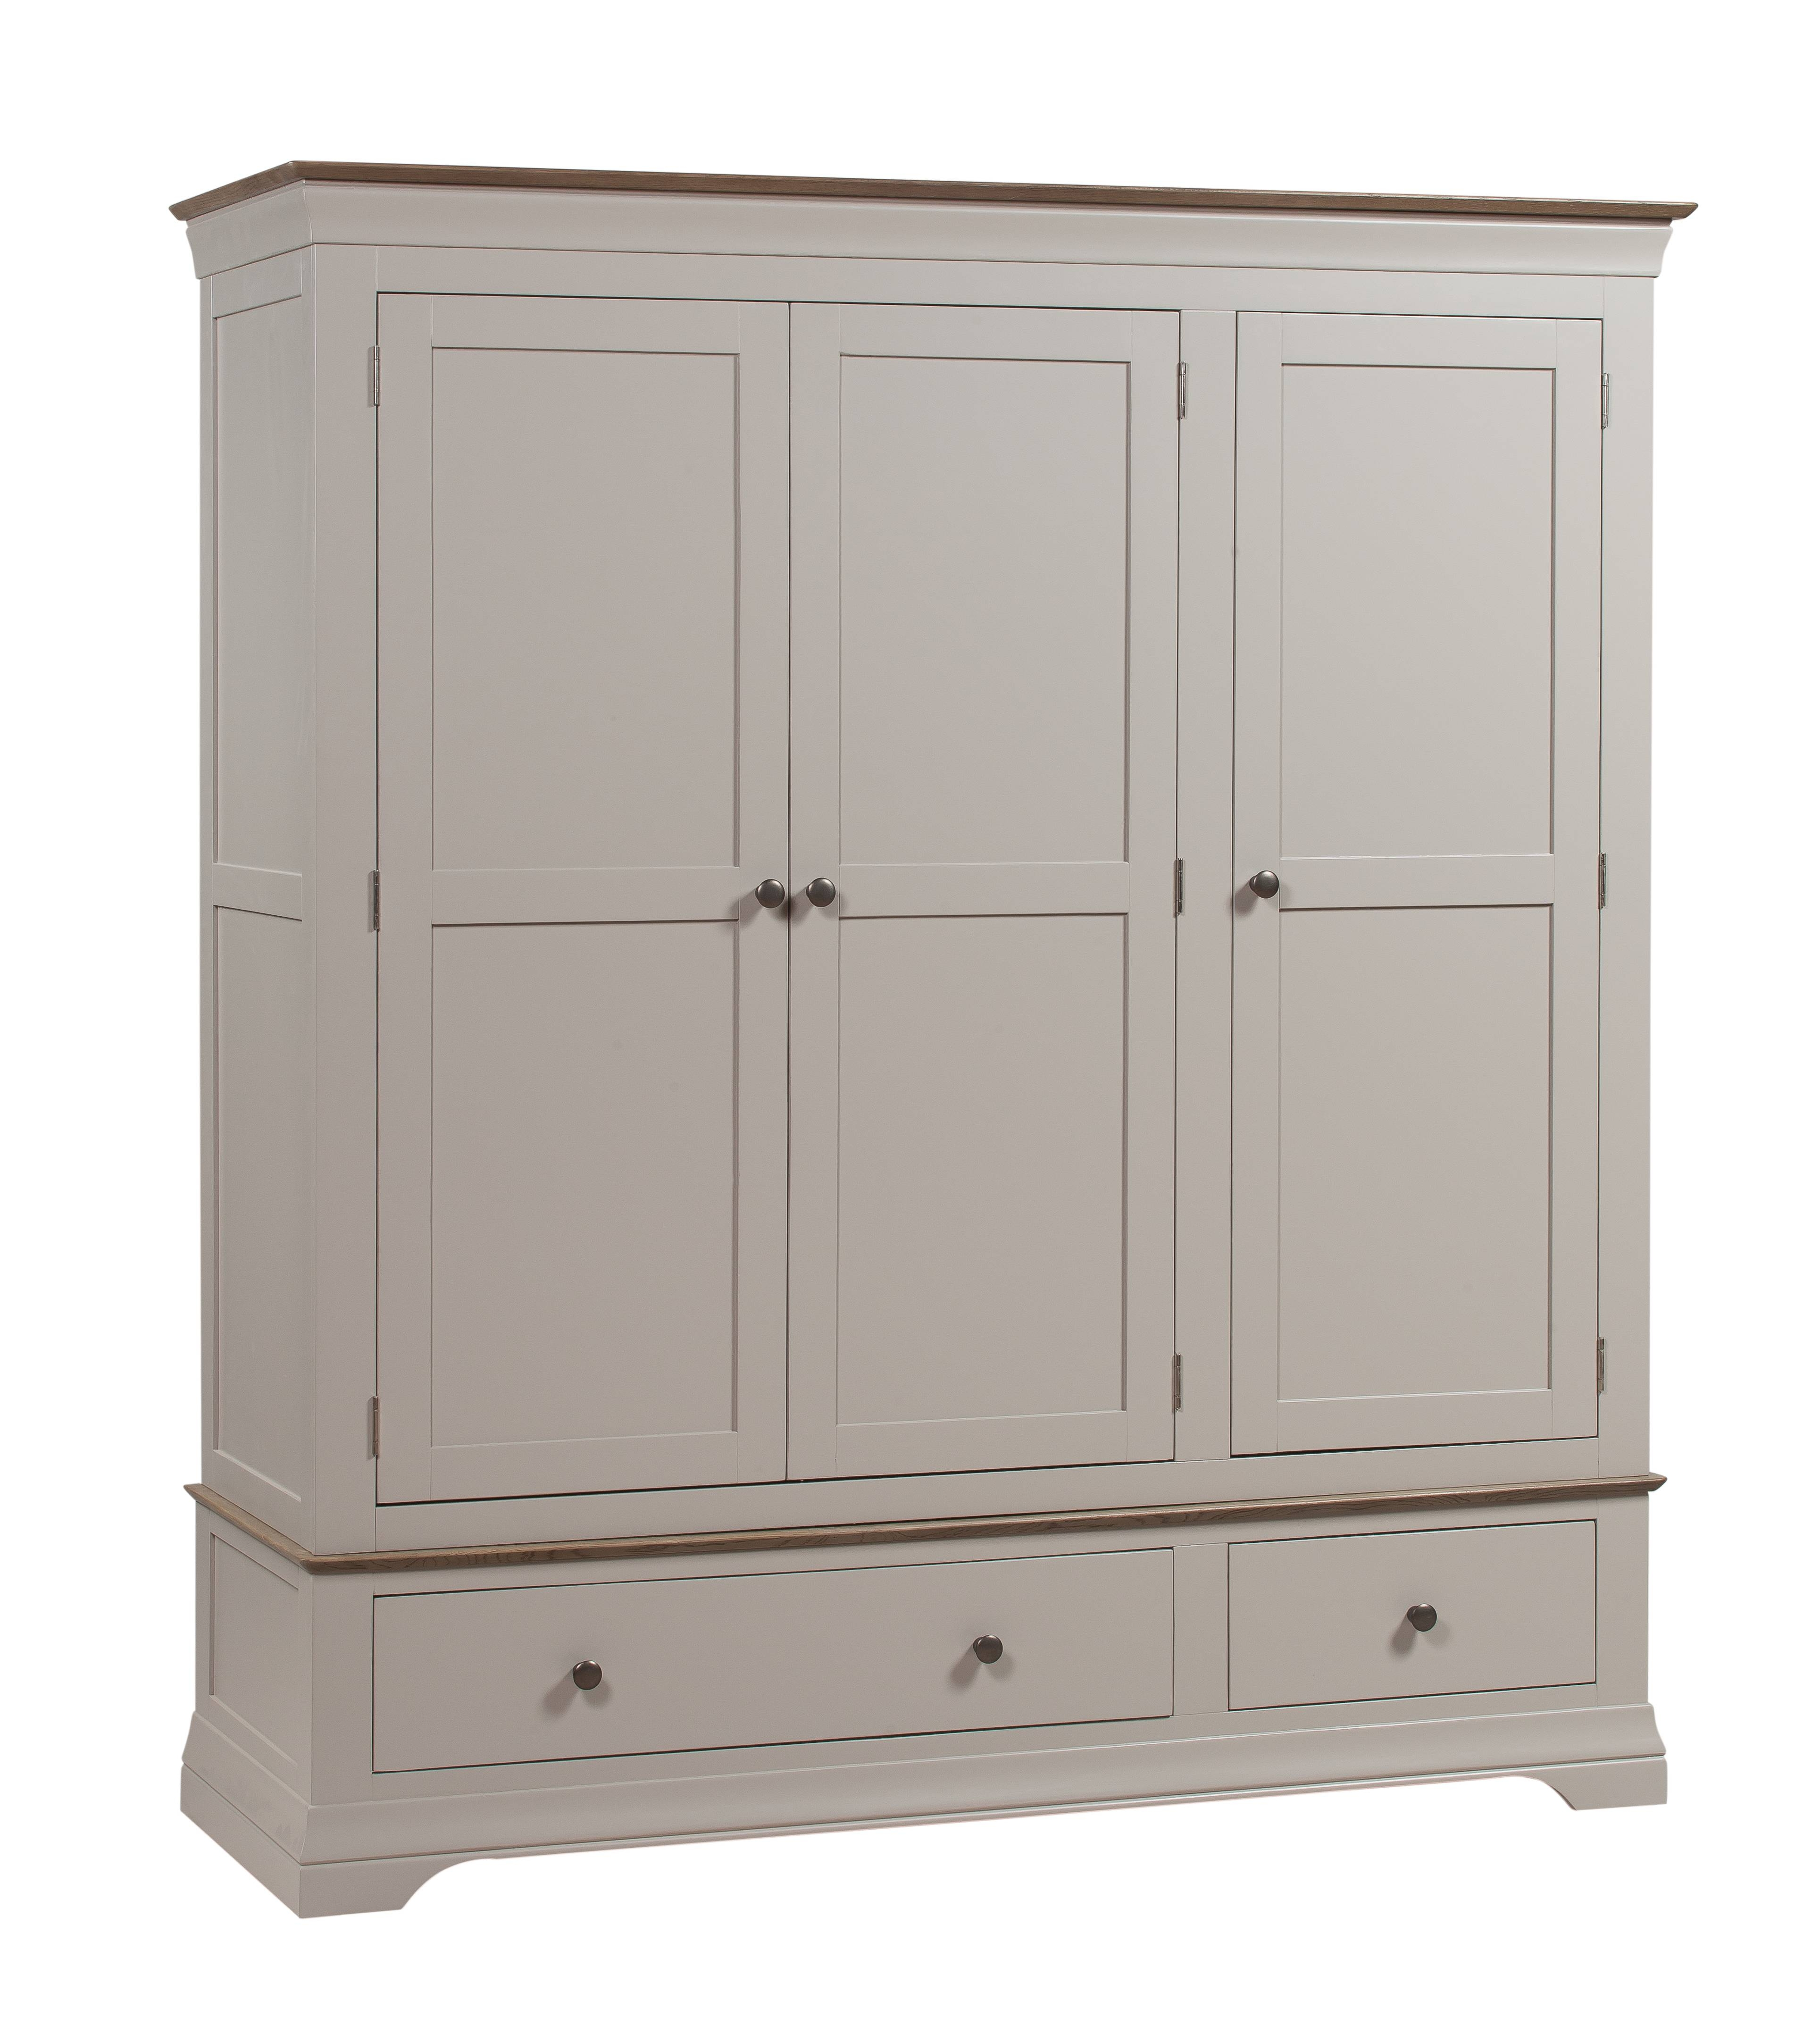 Painting A Wooden Wardrobe White | Mpfmpf Almirah, Beds for White Wood Wardrobes With Drawers (Image 6 of 15)